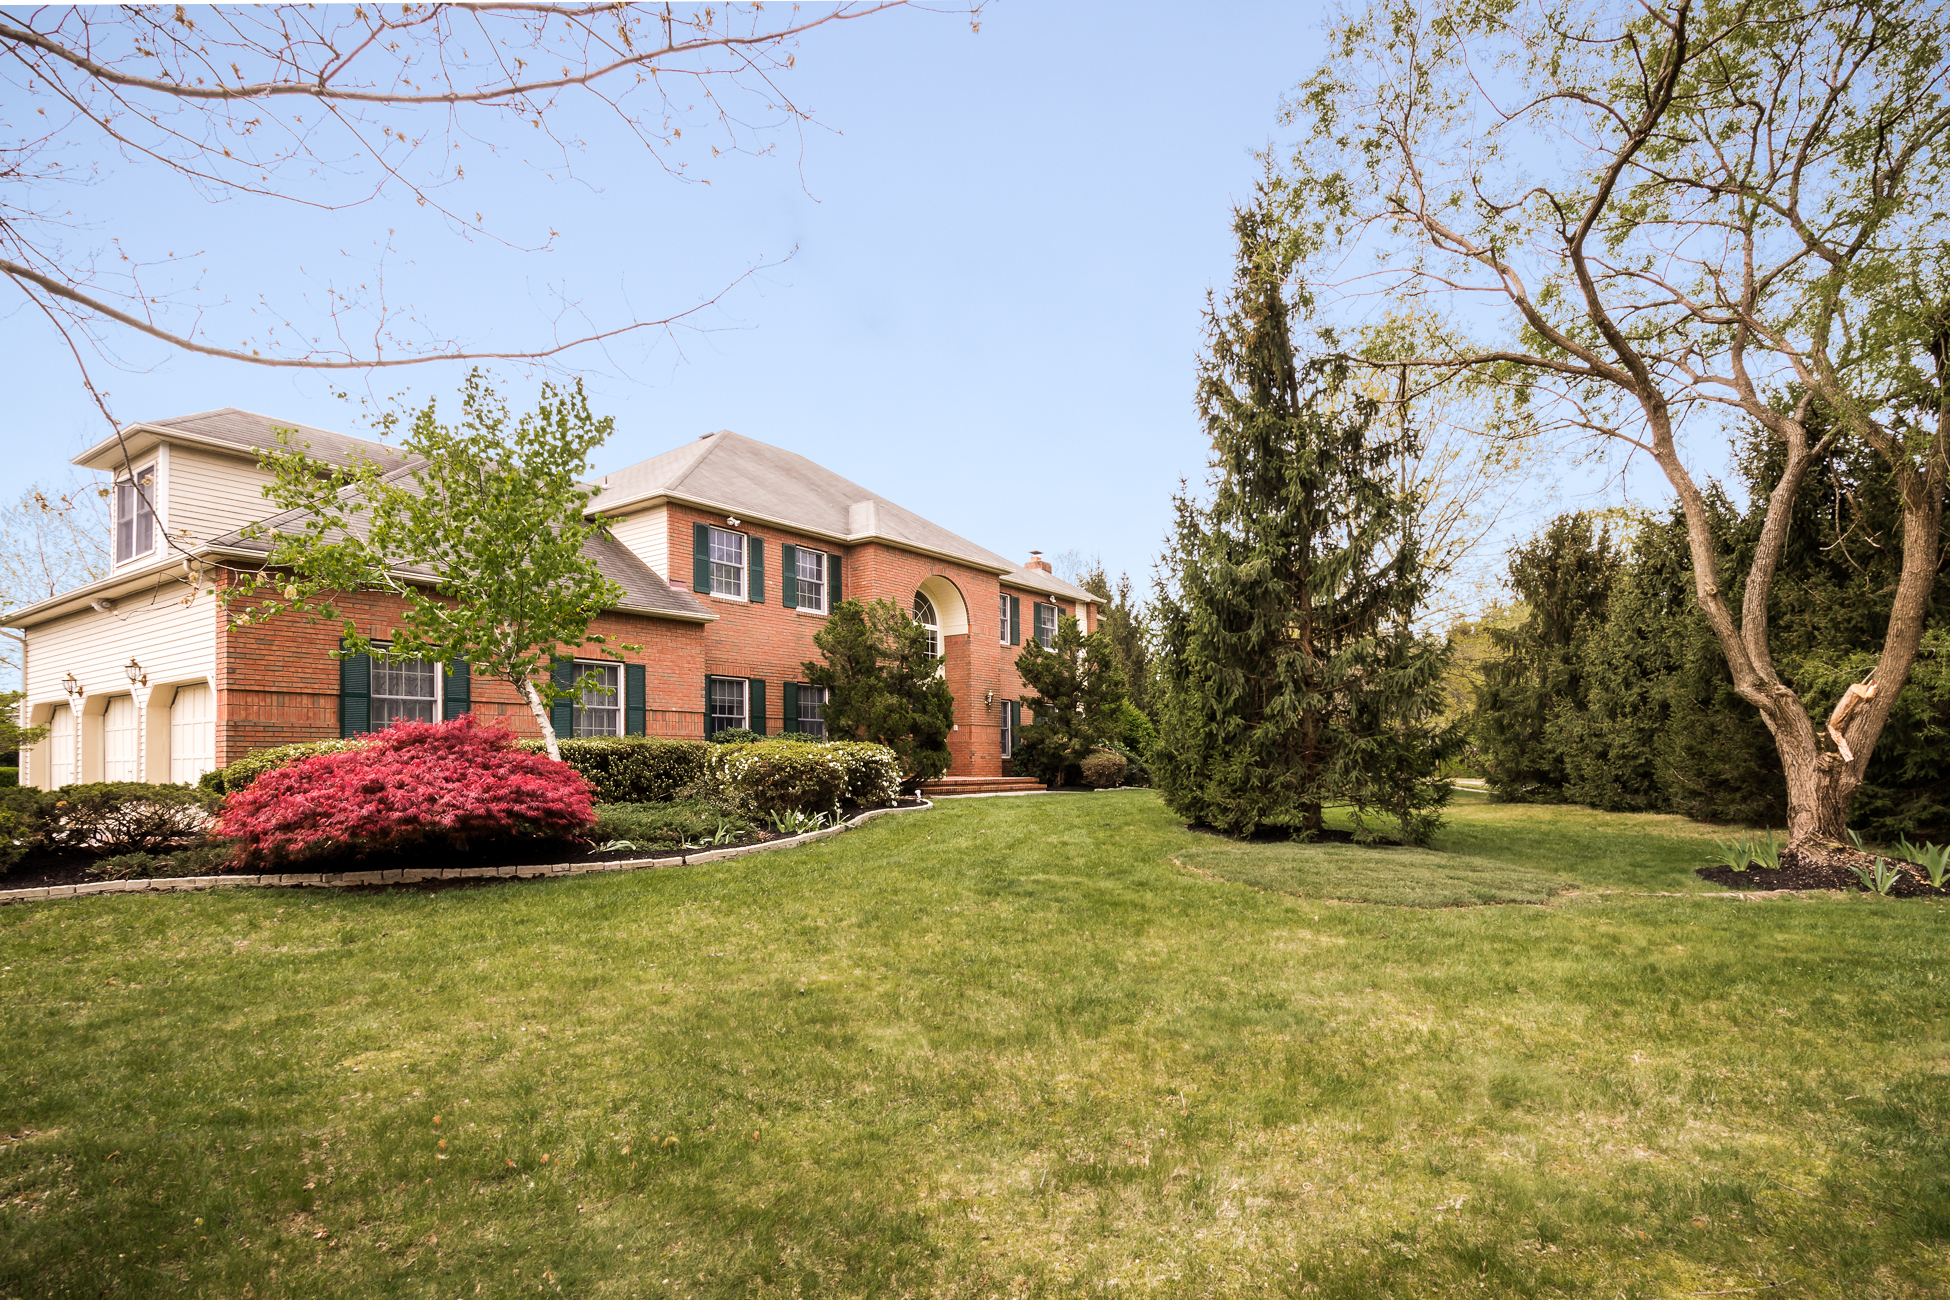 Single Family Home for Sale at Sophisticated Princeton Oaks Home on Corner Lot 2 Cliffview Court West Windsor, 08850 United States